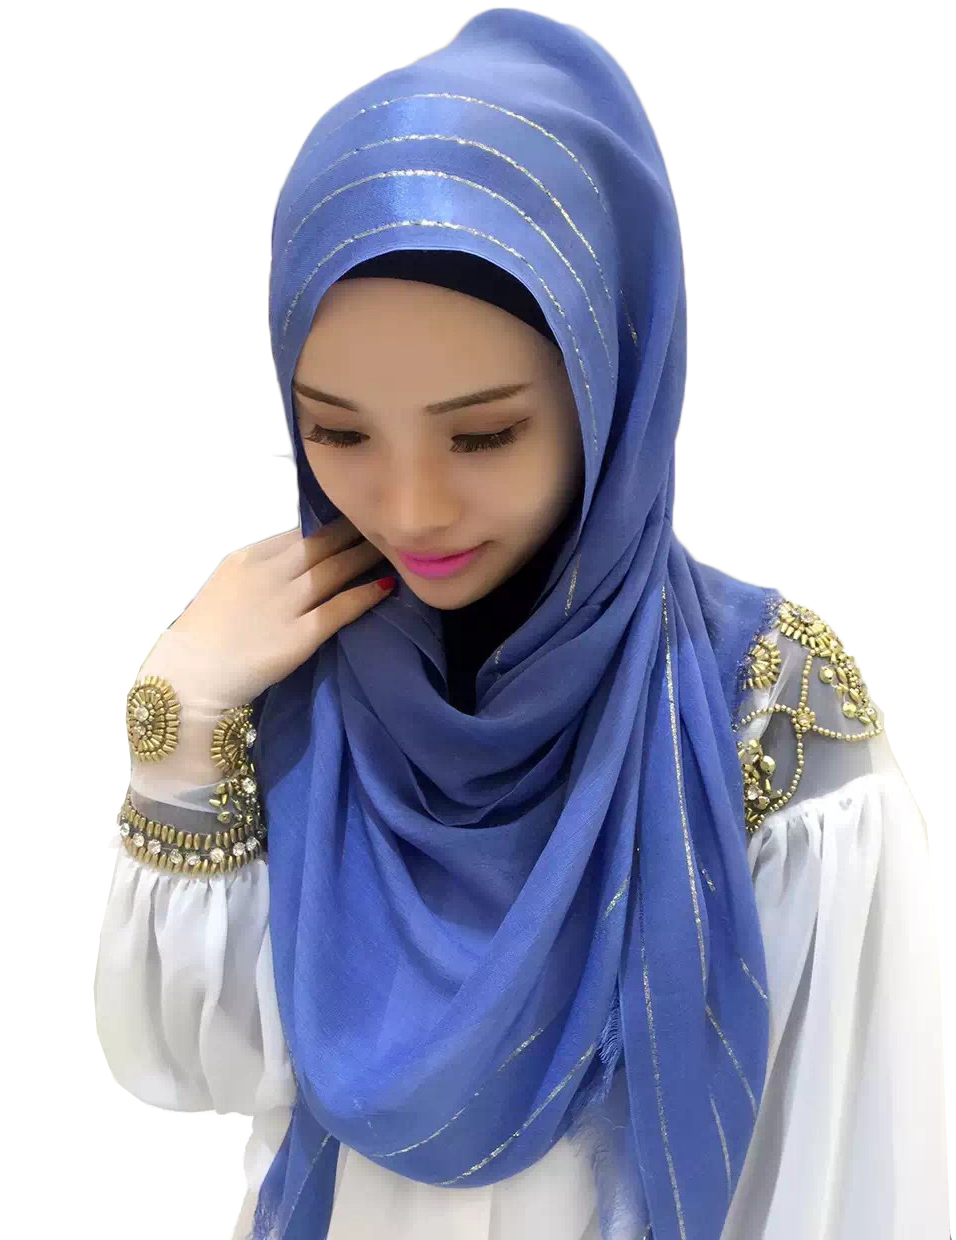 tibbie single muslim girls Arabiandate is the #1 arab dating site browse thousands of profiles of arab singles worldwide and make a real connection through live chat and correspondence.